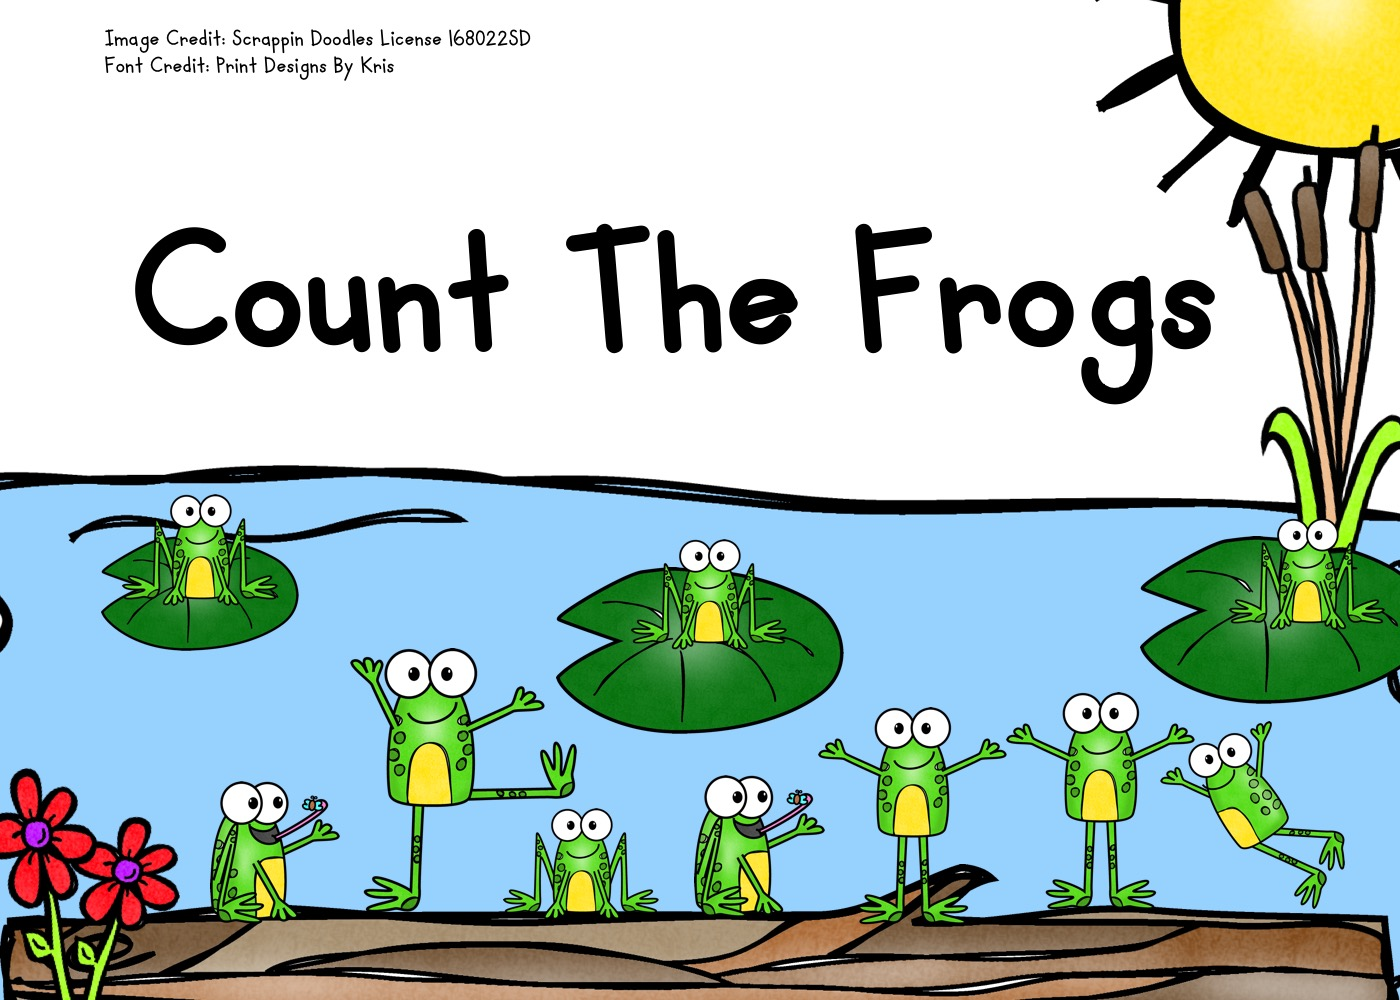 Fun Frog Printables for Preschool and Kindergarten | Animal Themed Spring Games | Hands On Math Homeschool Activities | Kids Classroom Center Ideas and Worksheets #FreePrintableWorksheetsForKids #frogs #counting #clipcards #spring